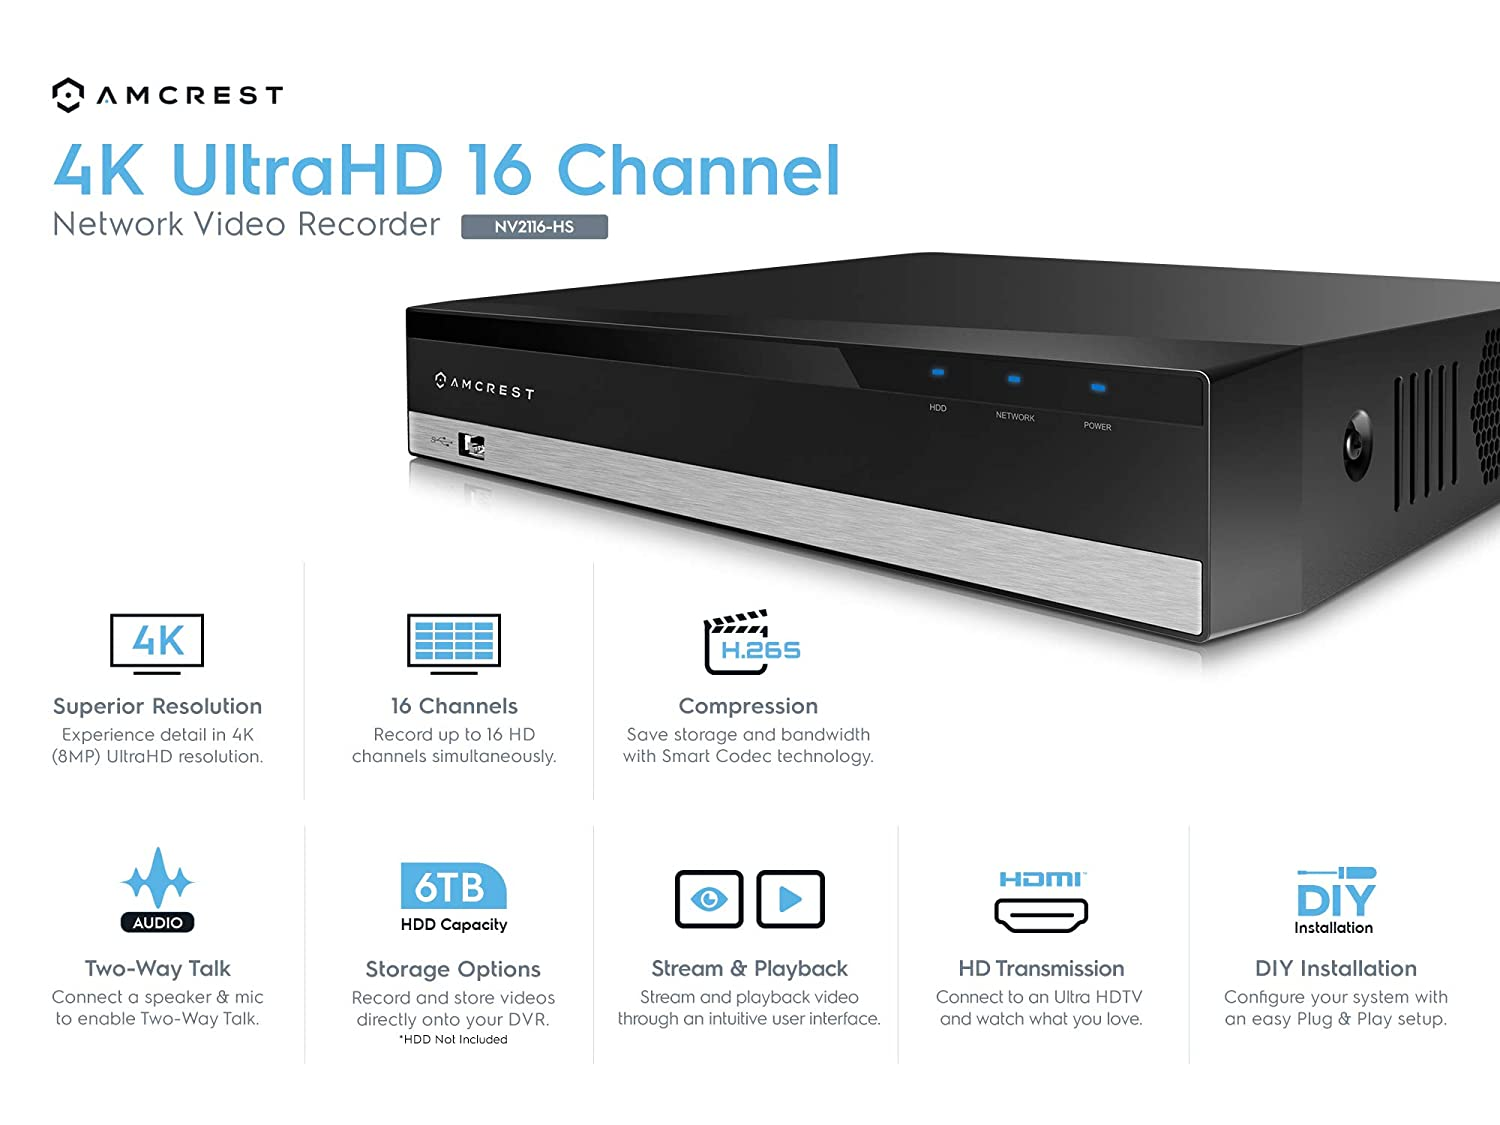 Pre-Installed 1TB Hard Drive, No Built-in WiFi NV2108-1TB Supports up to 8 x 4K IP Cameras Amcrest NV2108-HS 8CH 1080P//3MP//4MP//5MP//6MP//4K Network Video Recorder